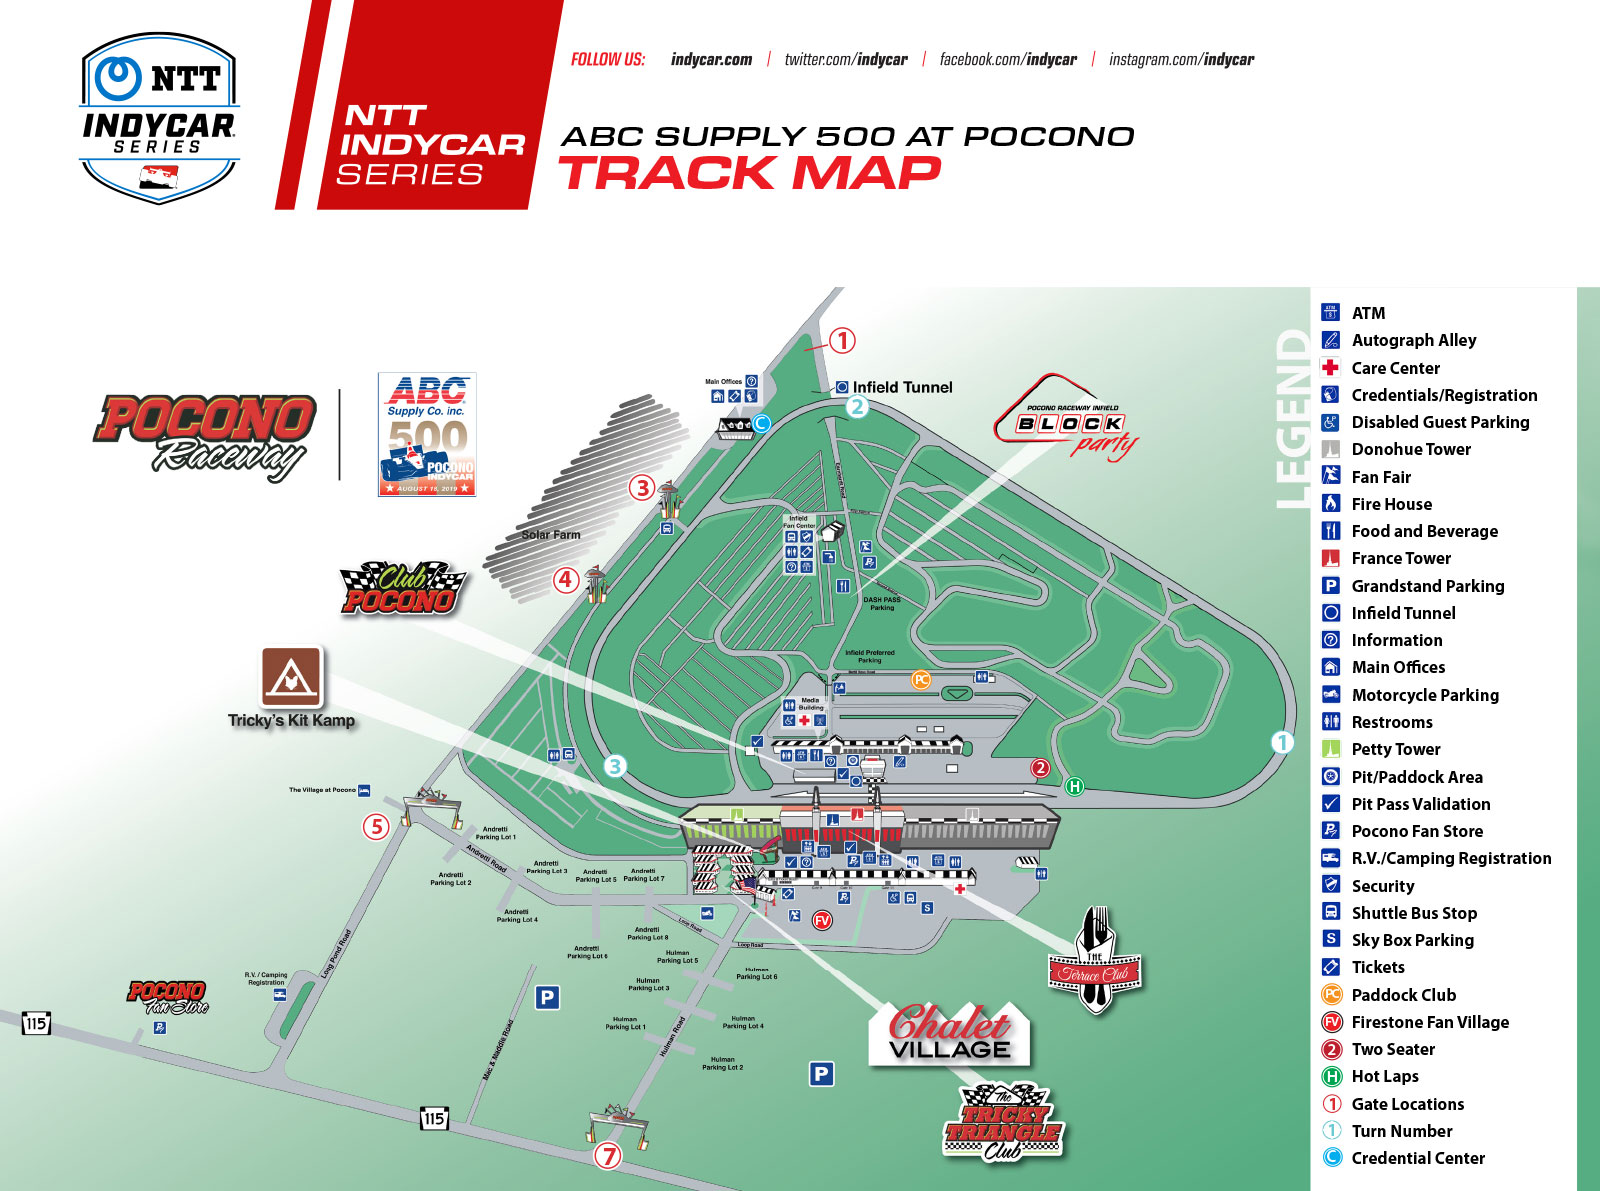 INDYCAR News for the Week of August 17, 2015 – August 23, 2015 on silverstone track map, daytona 500 track map, monster energy cup track map, road america track map, road atlanta track map, laguna seca track map, atlanta motor speedway track map, monaco grand prix track map, indy airport map, texas motor speedway road course map, nurburgring track map, bristol motor speedway track map, honda indy toronto track map, thunderhill track map, kentucky derby track map, le mans track map, brickyard 400 track map, detroit grand prix track map, hockenheimring track map, corvette track map,